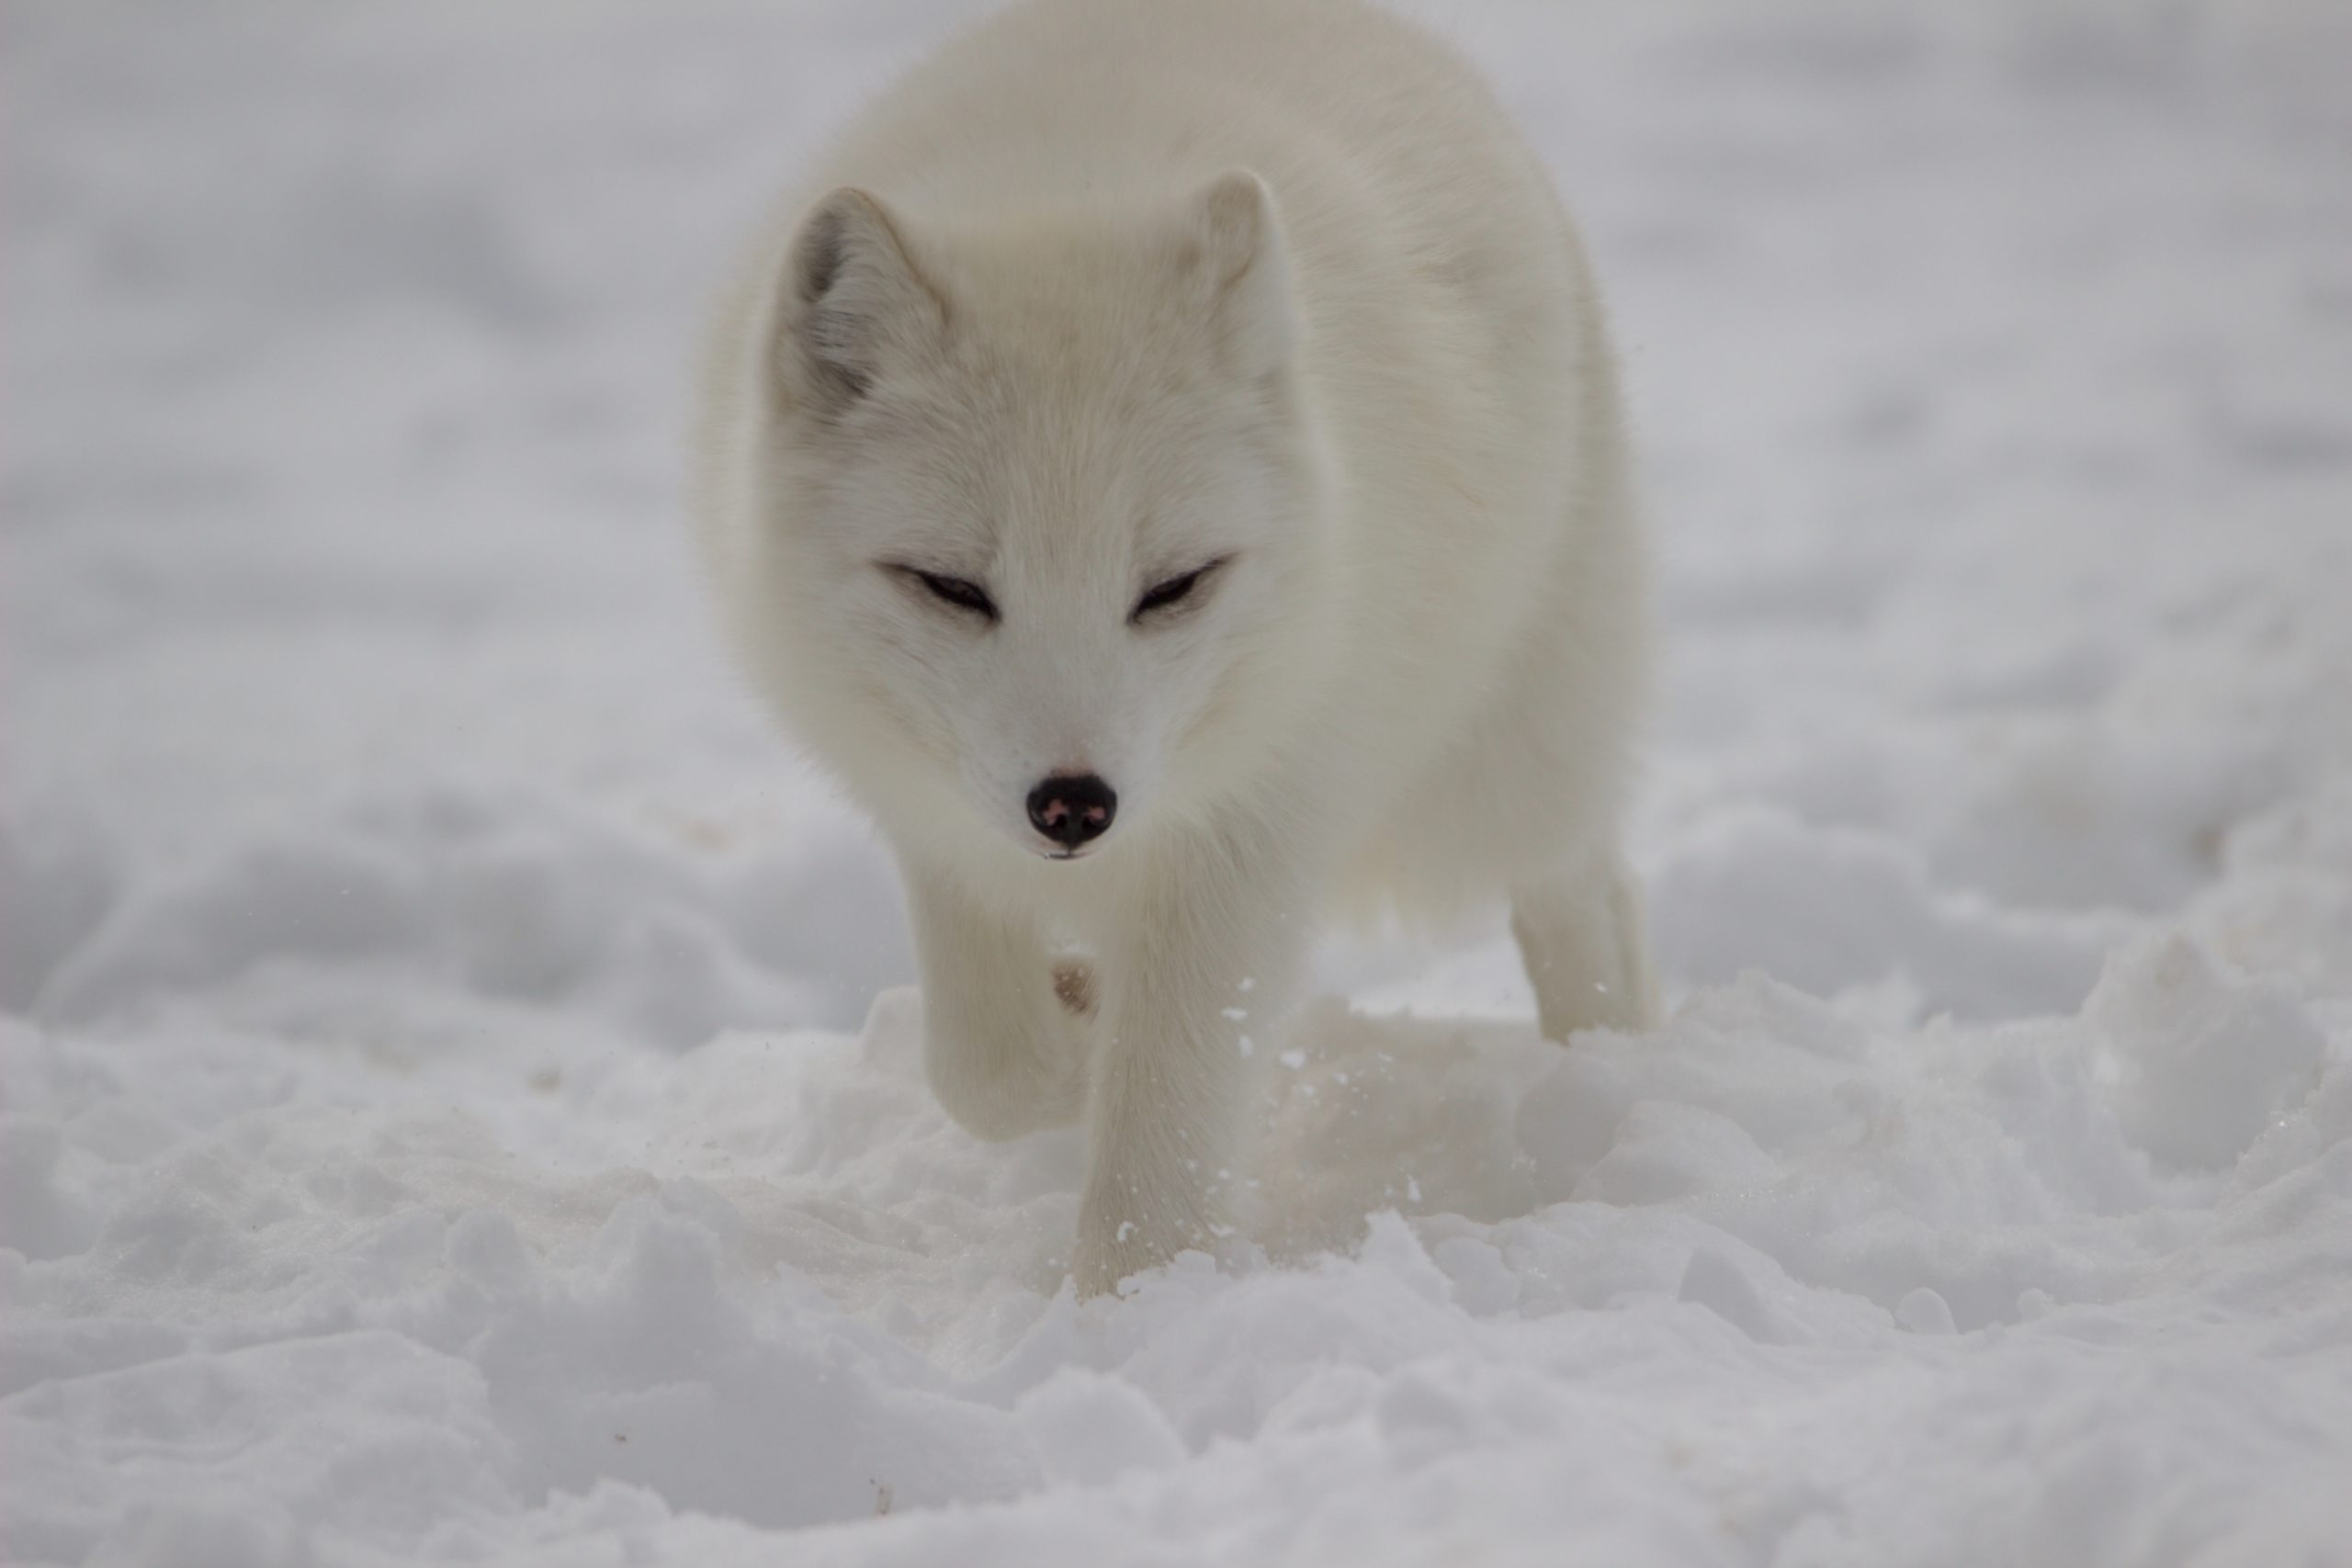 Picture of white artic fox in cold climate